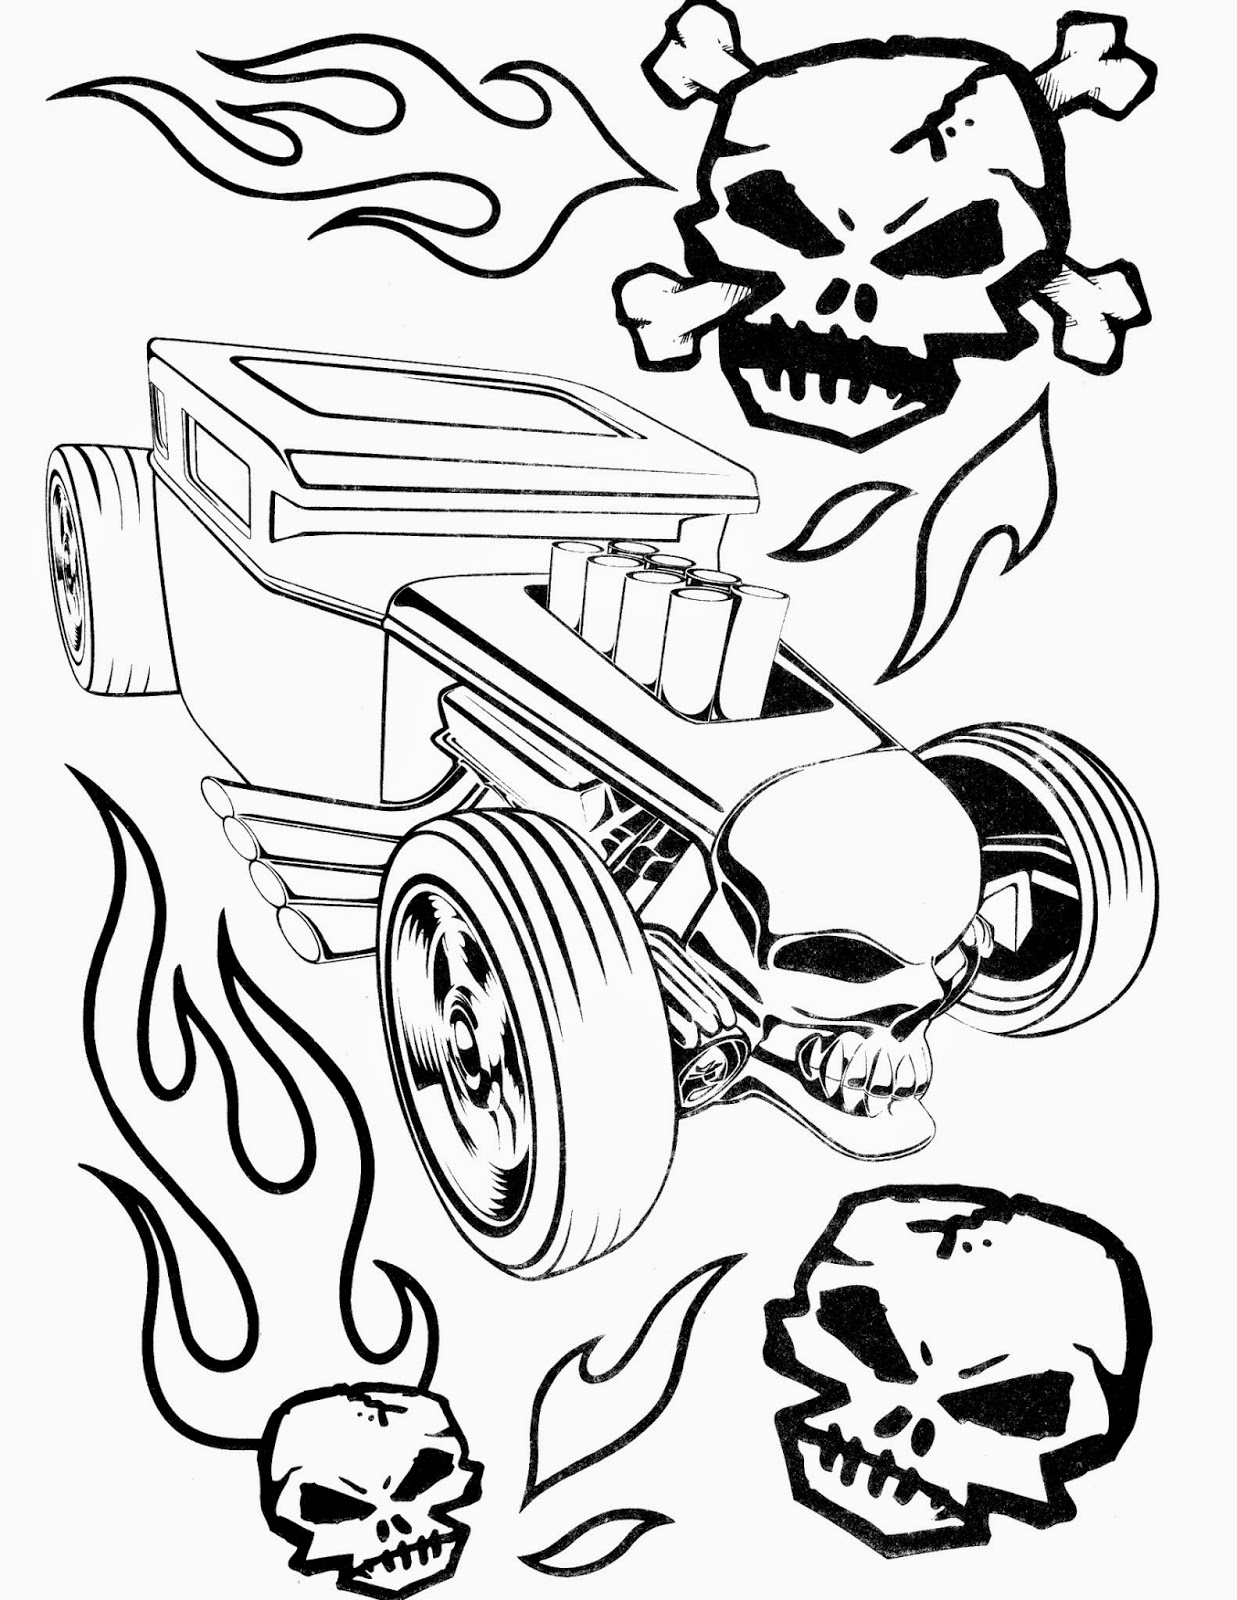 hotwheels coloring pages hot wheels 60 coloringcolorcom hotwheels coloring pages